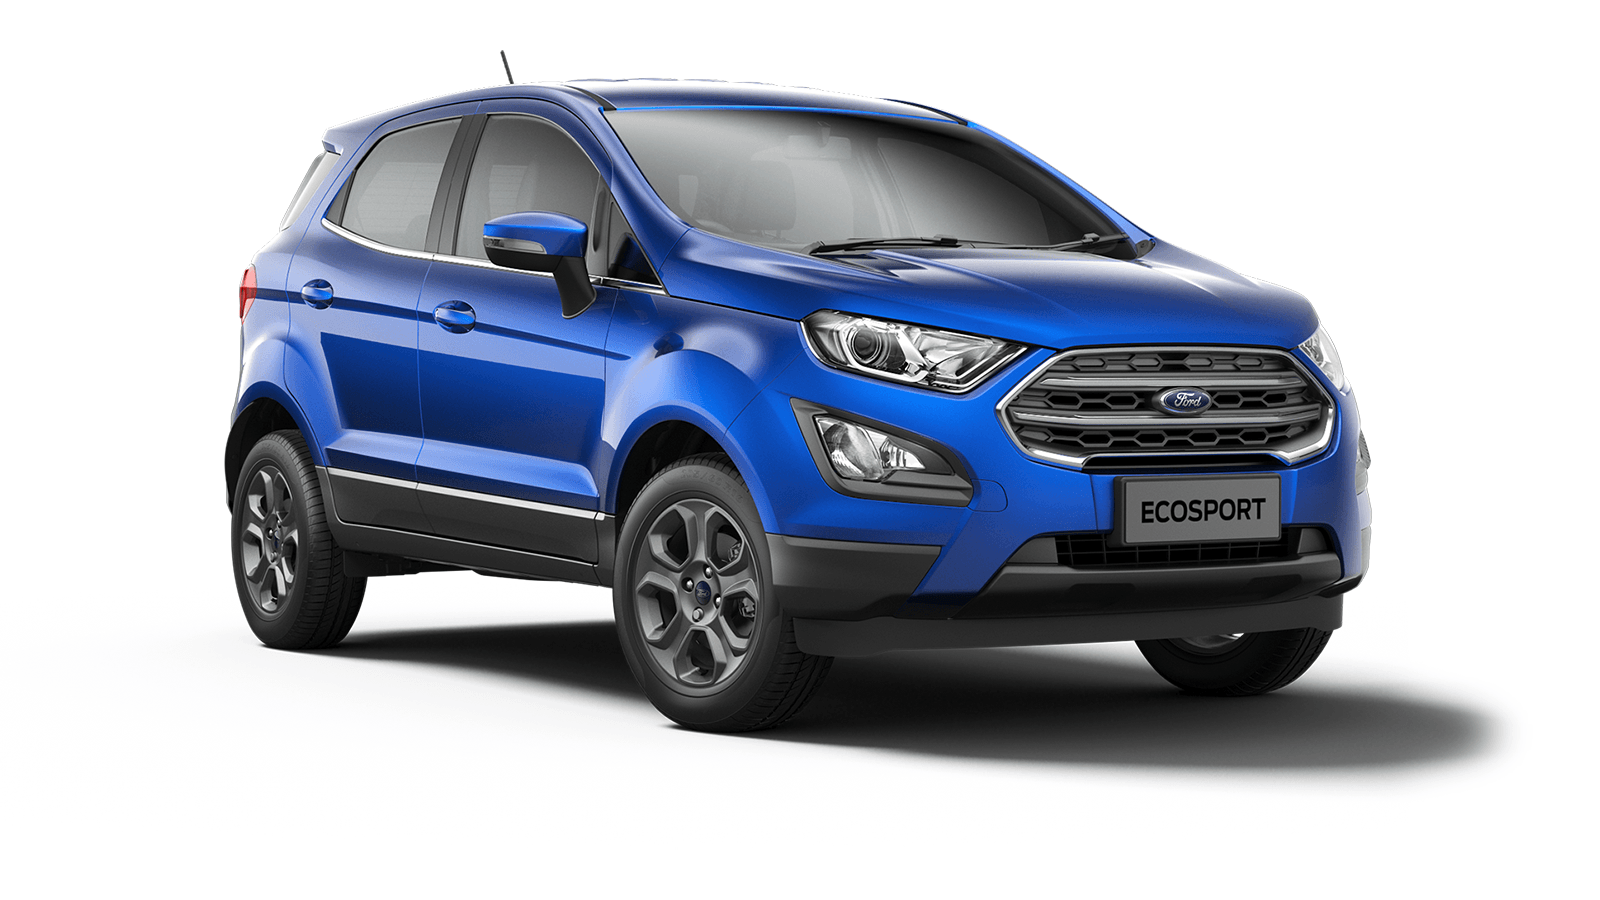 New Ford ECOSPORT Zetec 1.0 EcoBoost 125PS at Tremont Garage